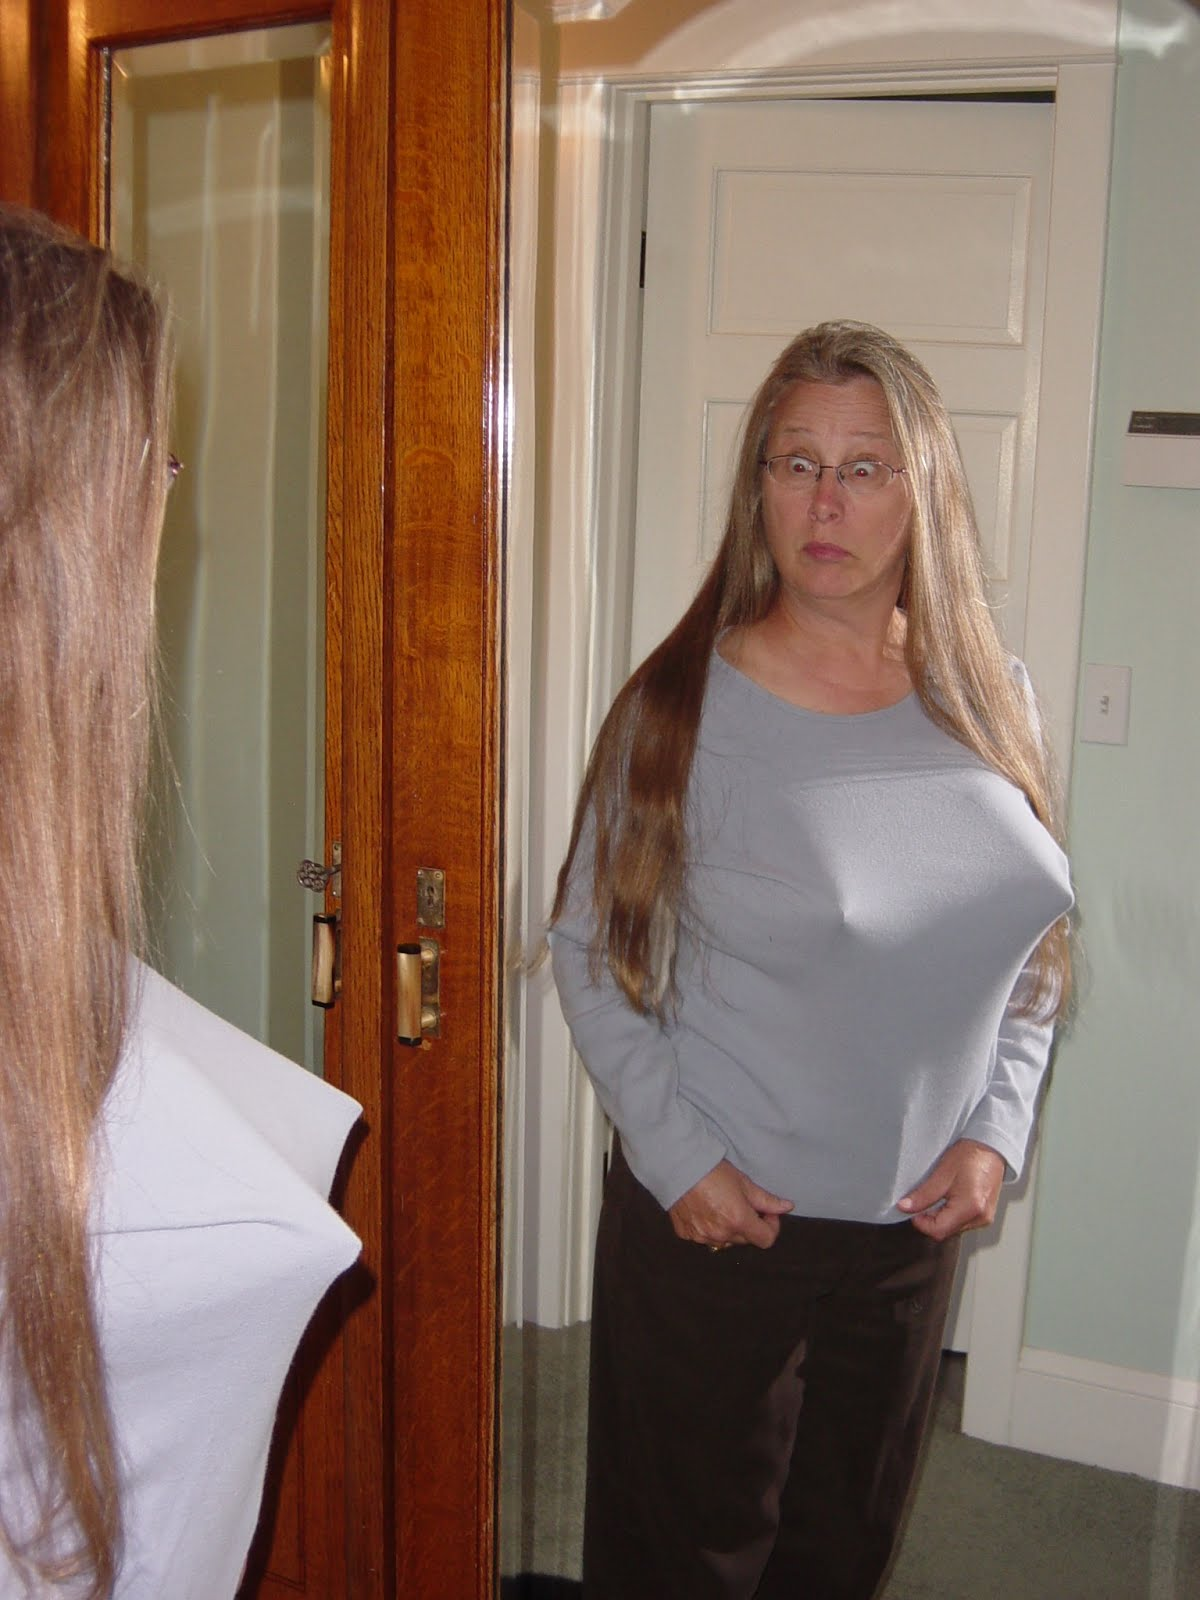 Pictures young saggy breasts, free gang bang many men